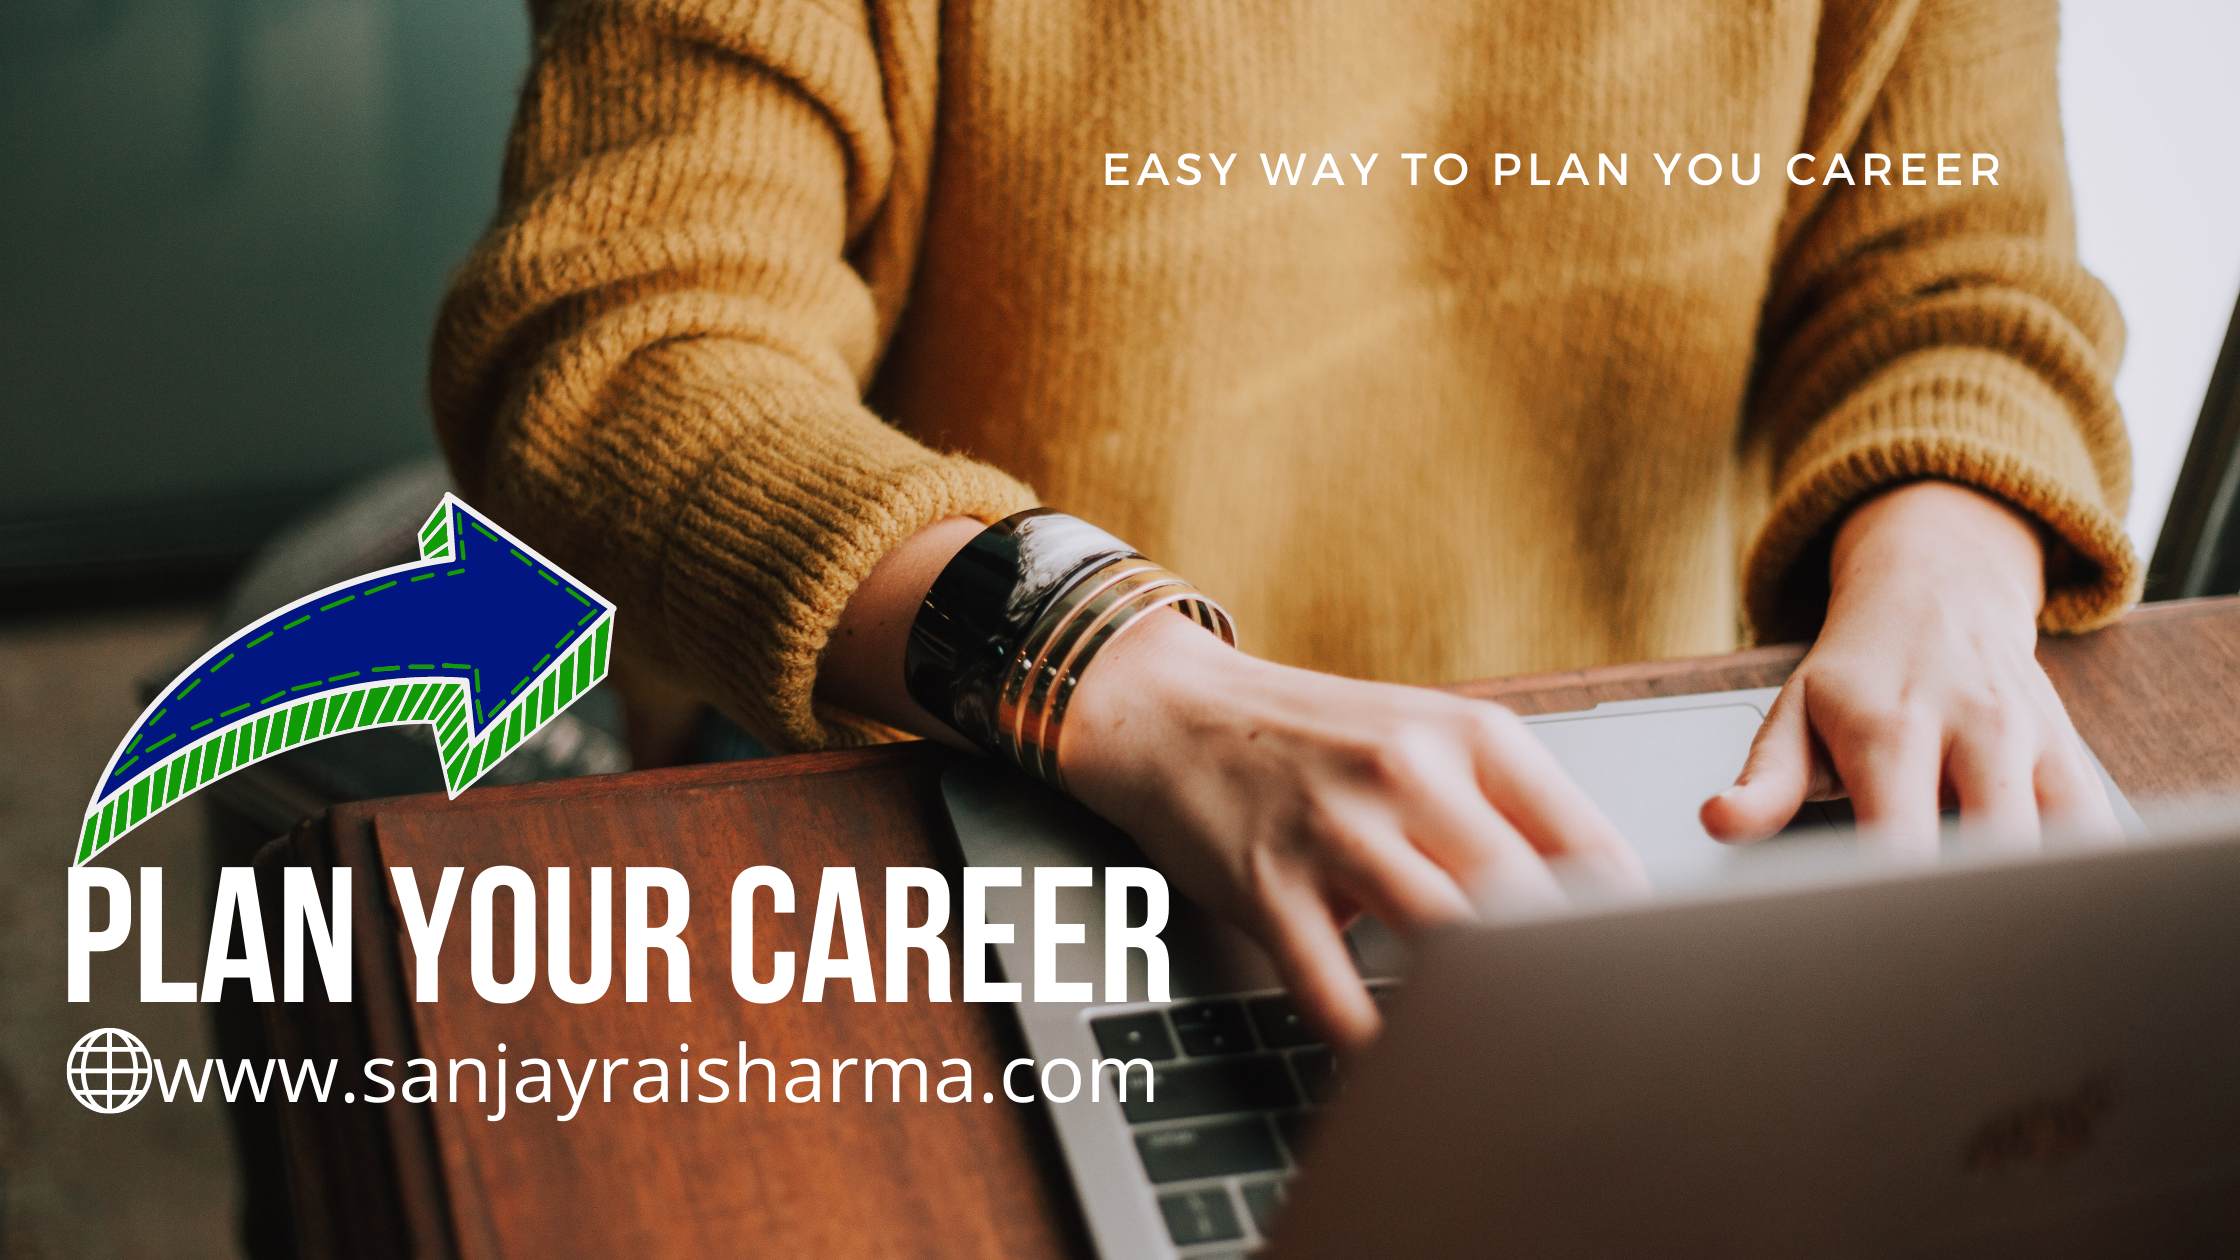 Easy way to Plan your career